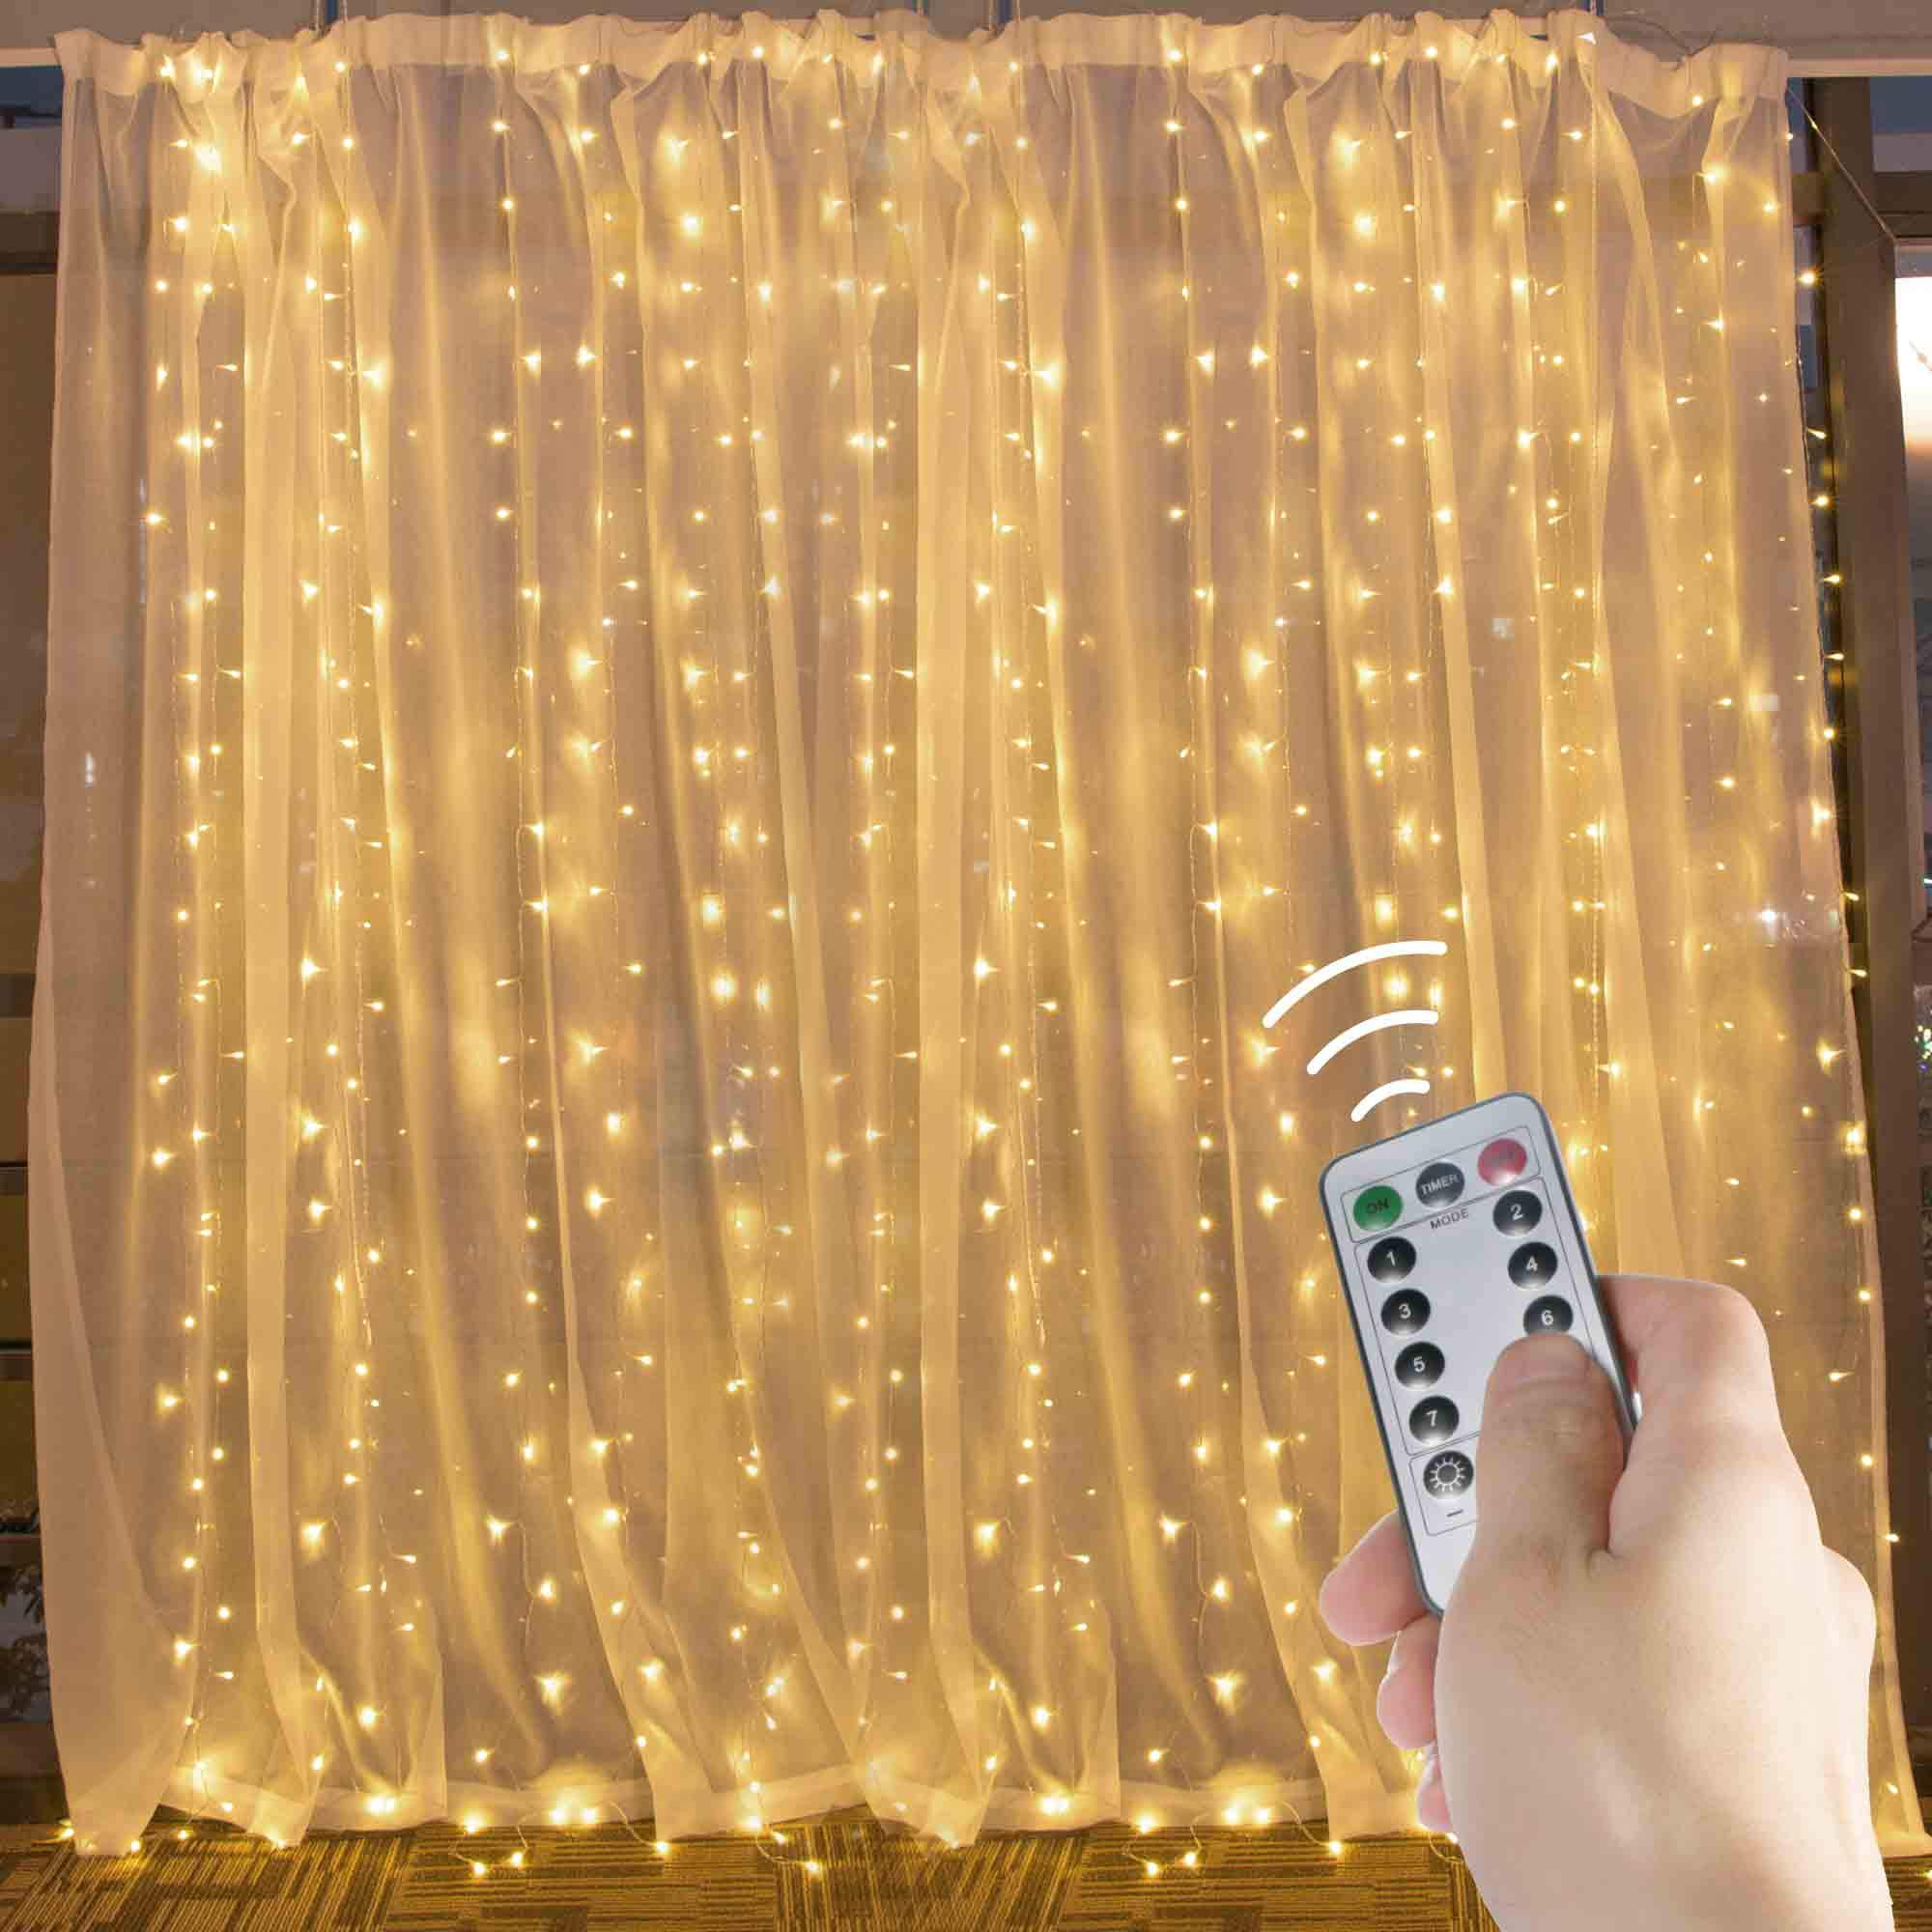 10 Ft. LED Window Curtain Icicle Lights with Remote & Timer, 300-LED Fairy Twinkle String Lights with 8 Modes Fits for Bedroom Wedding Party Backdrop Outdoor Indoor Wall Decoration, Warm White